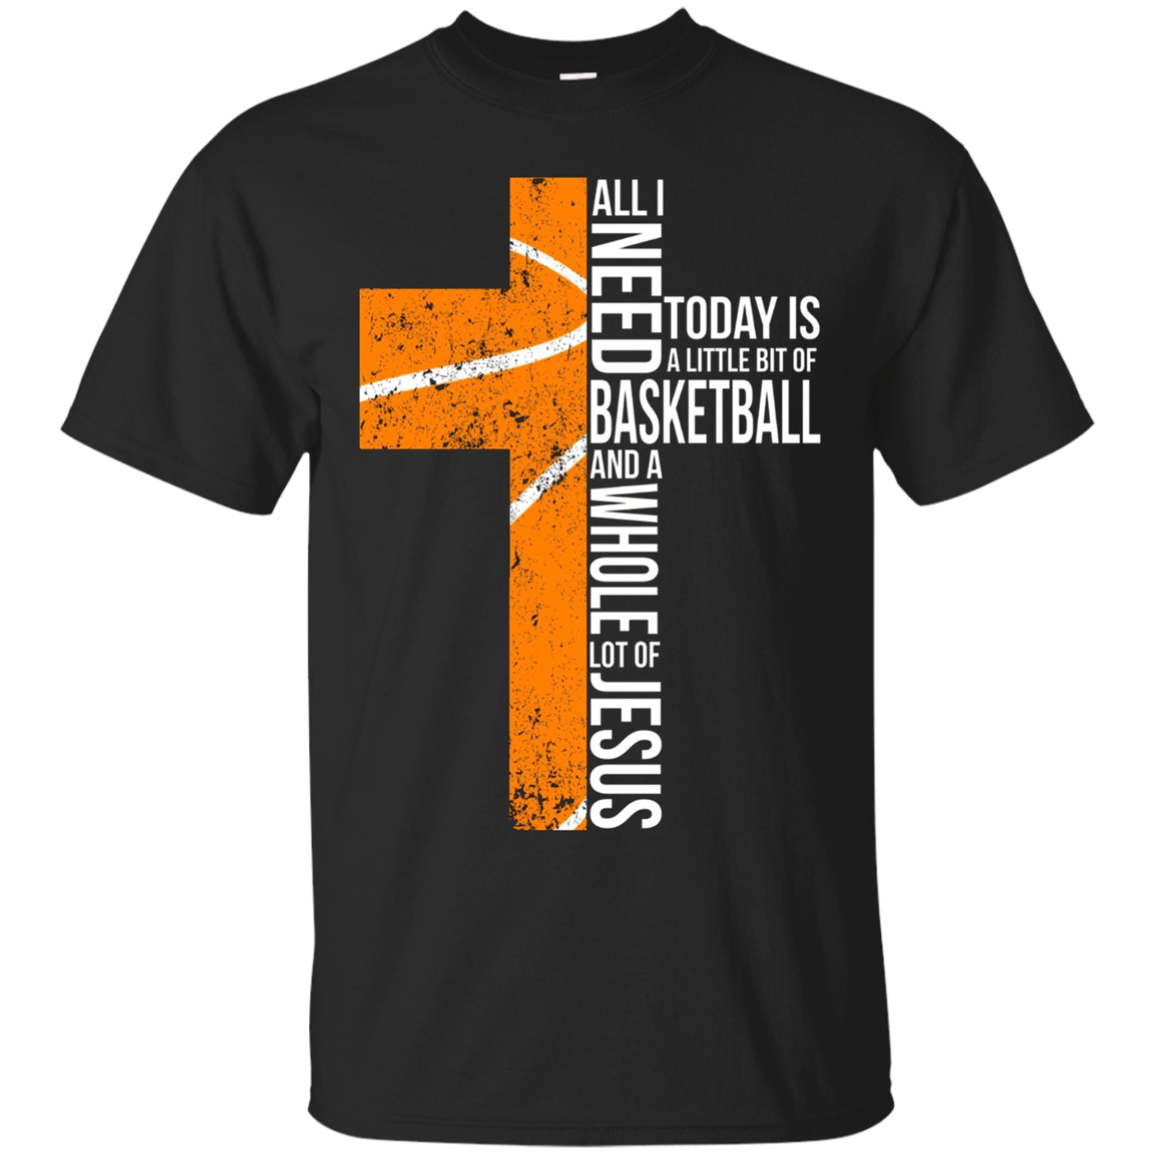 Basketball All I Need Today T-shirt